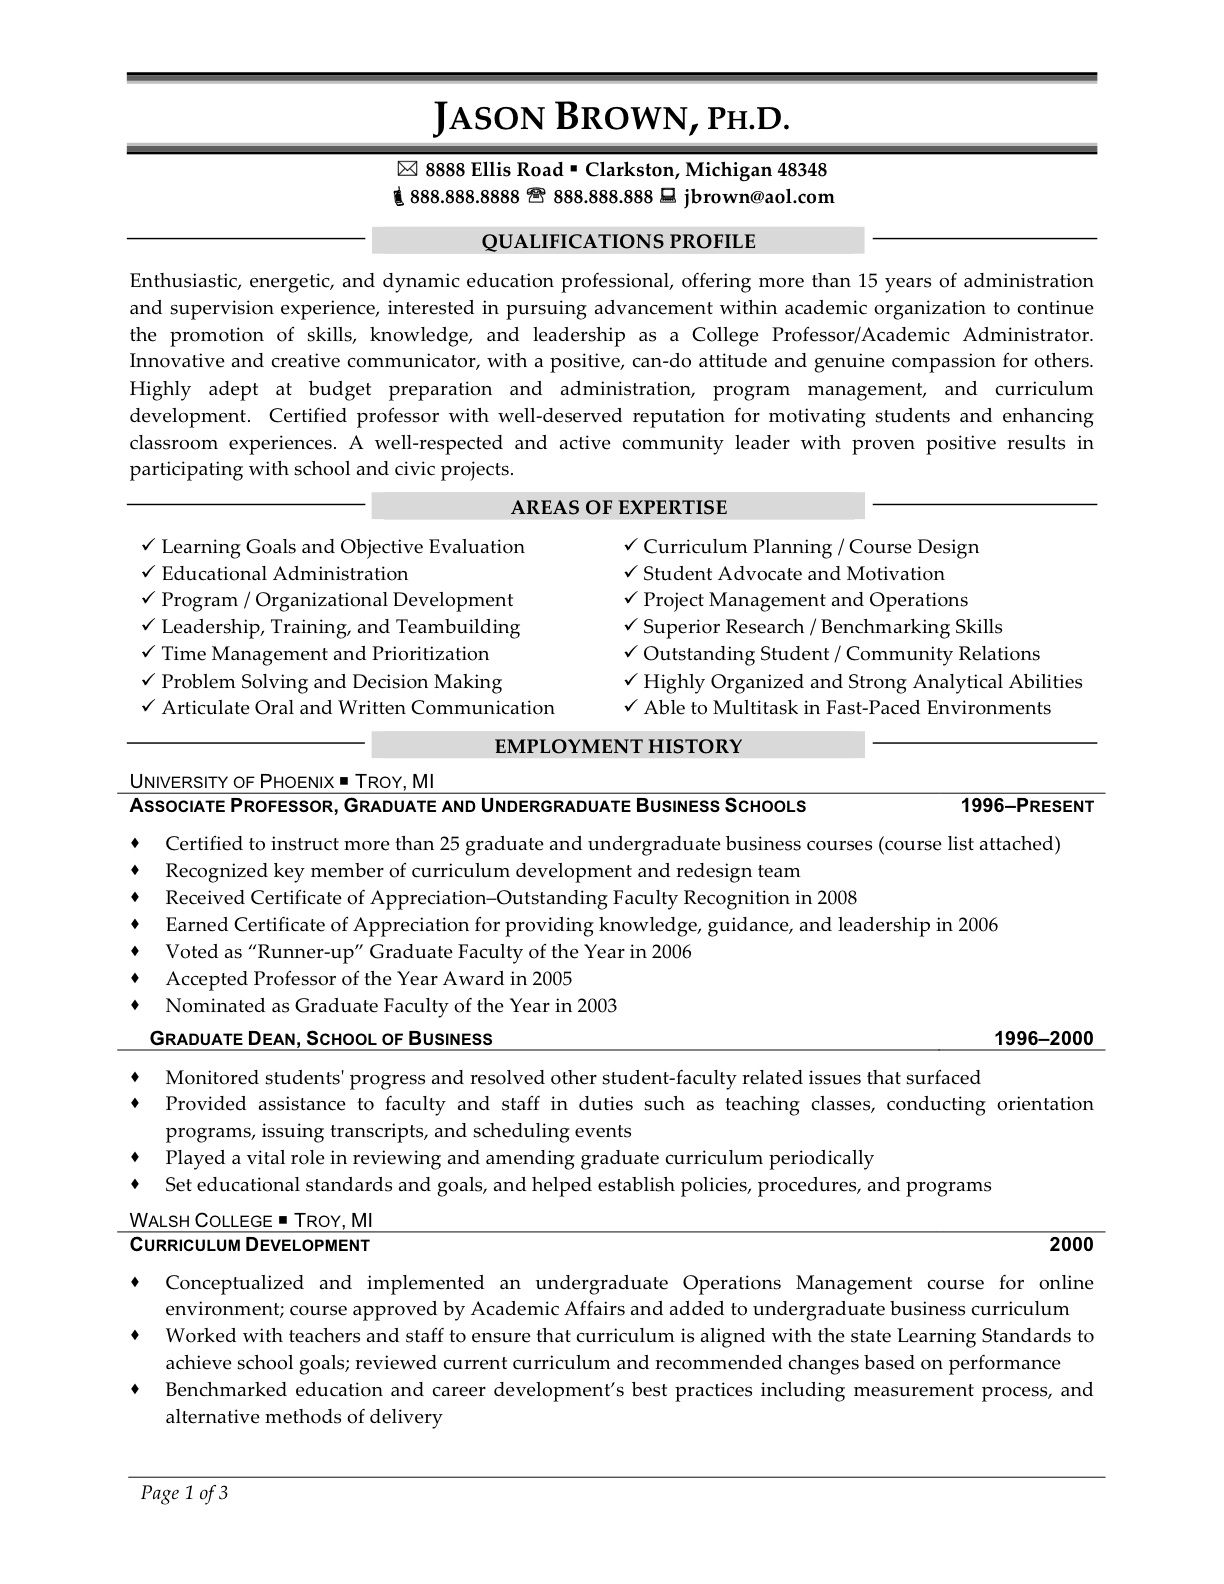 Sample Resume For Professor Job Careerperfect Academic Skill Cover